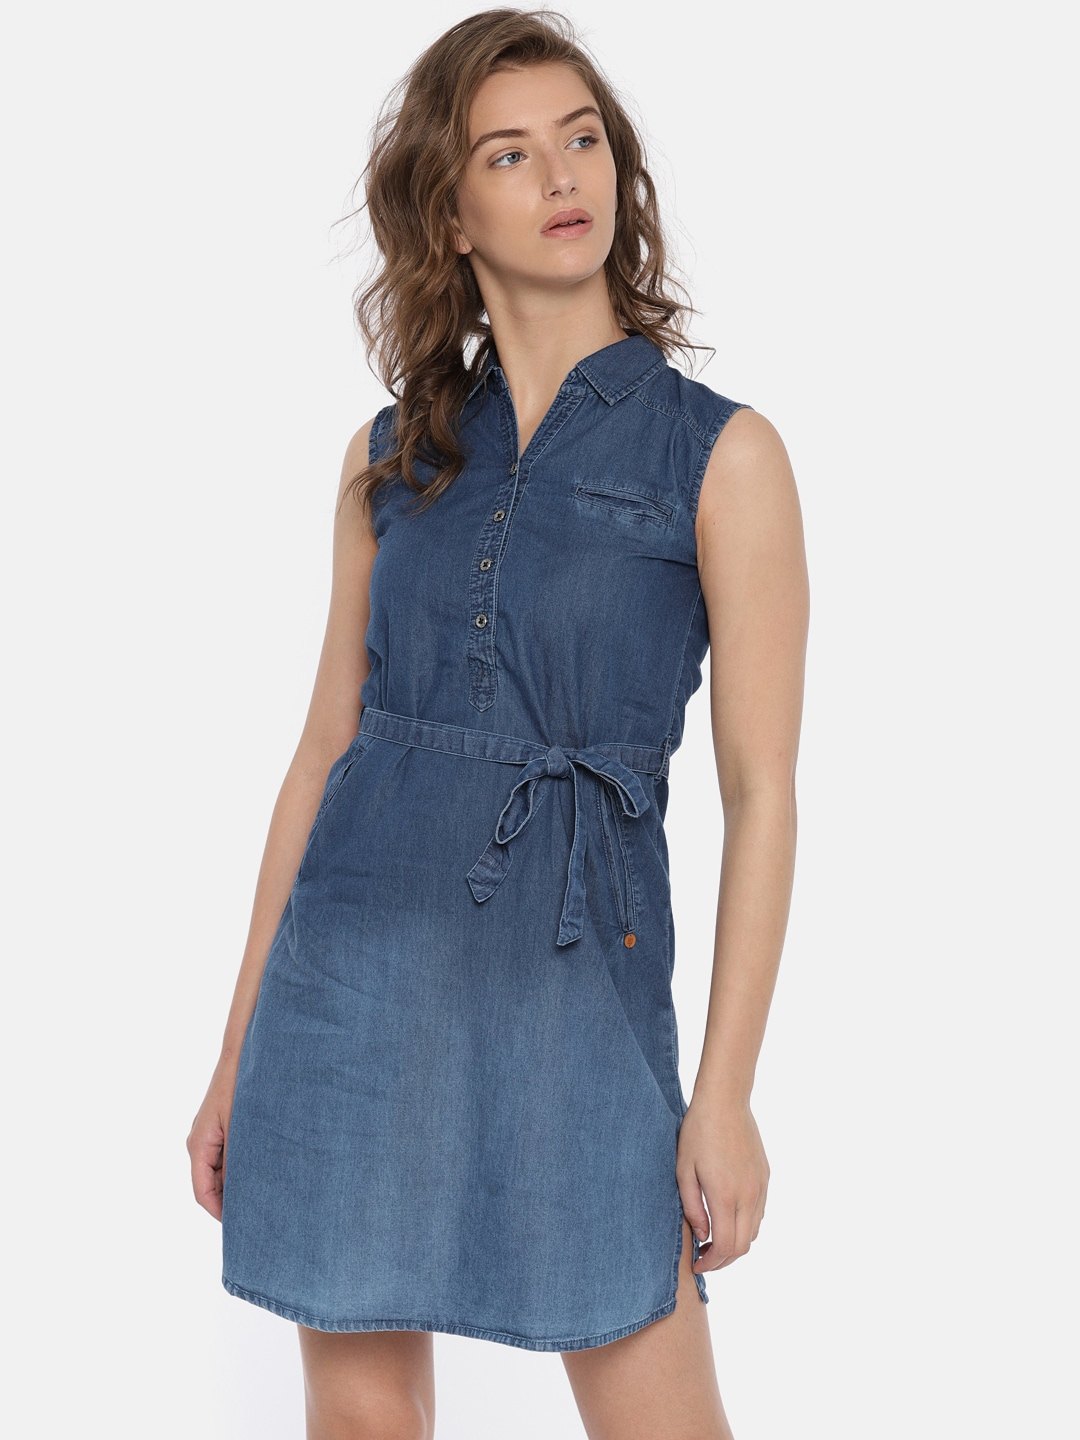 c4840ecddc Deal Jeans - Exclusive Deal Jeans Online Store in India at Myntra